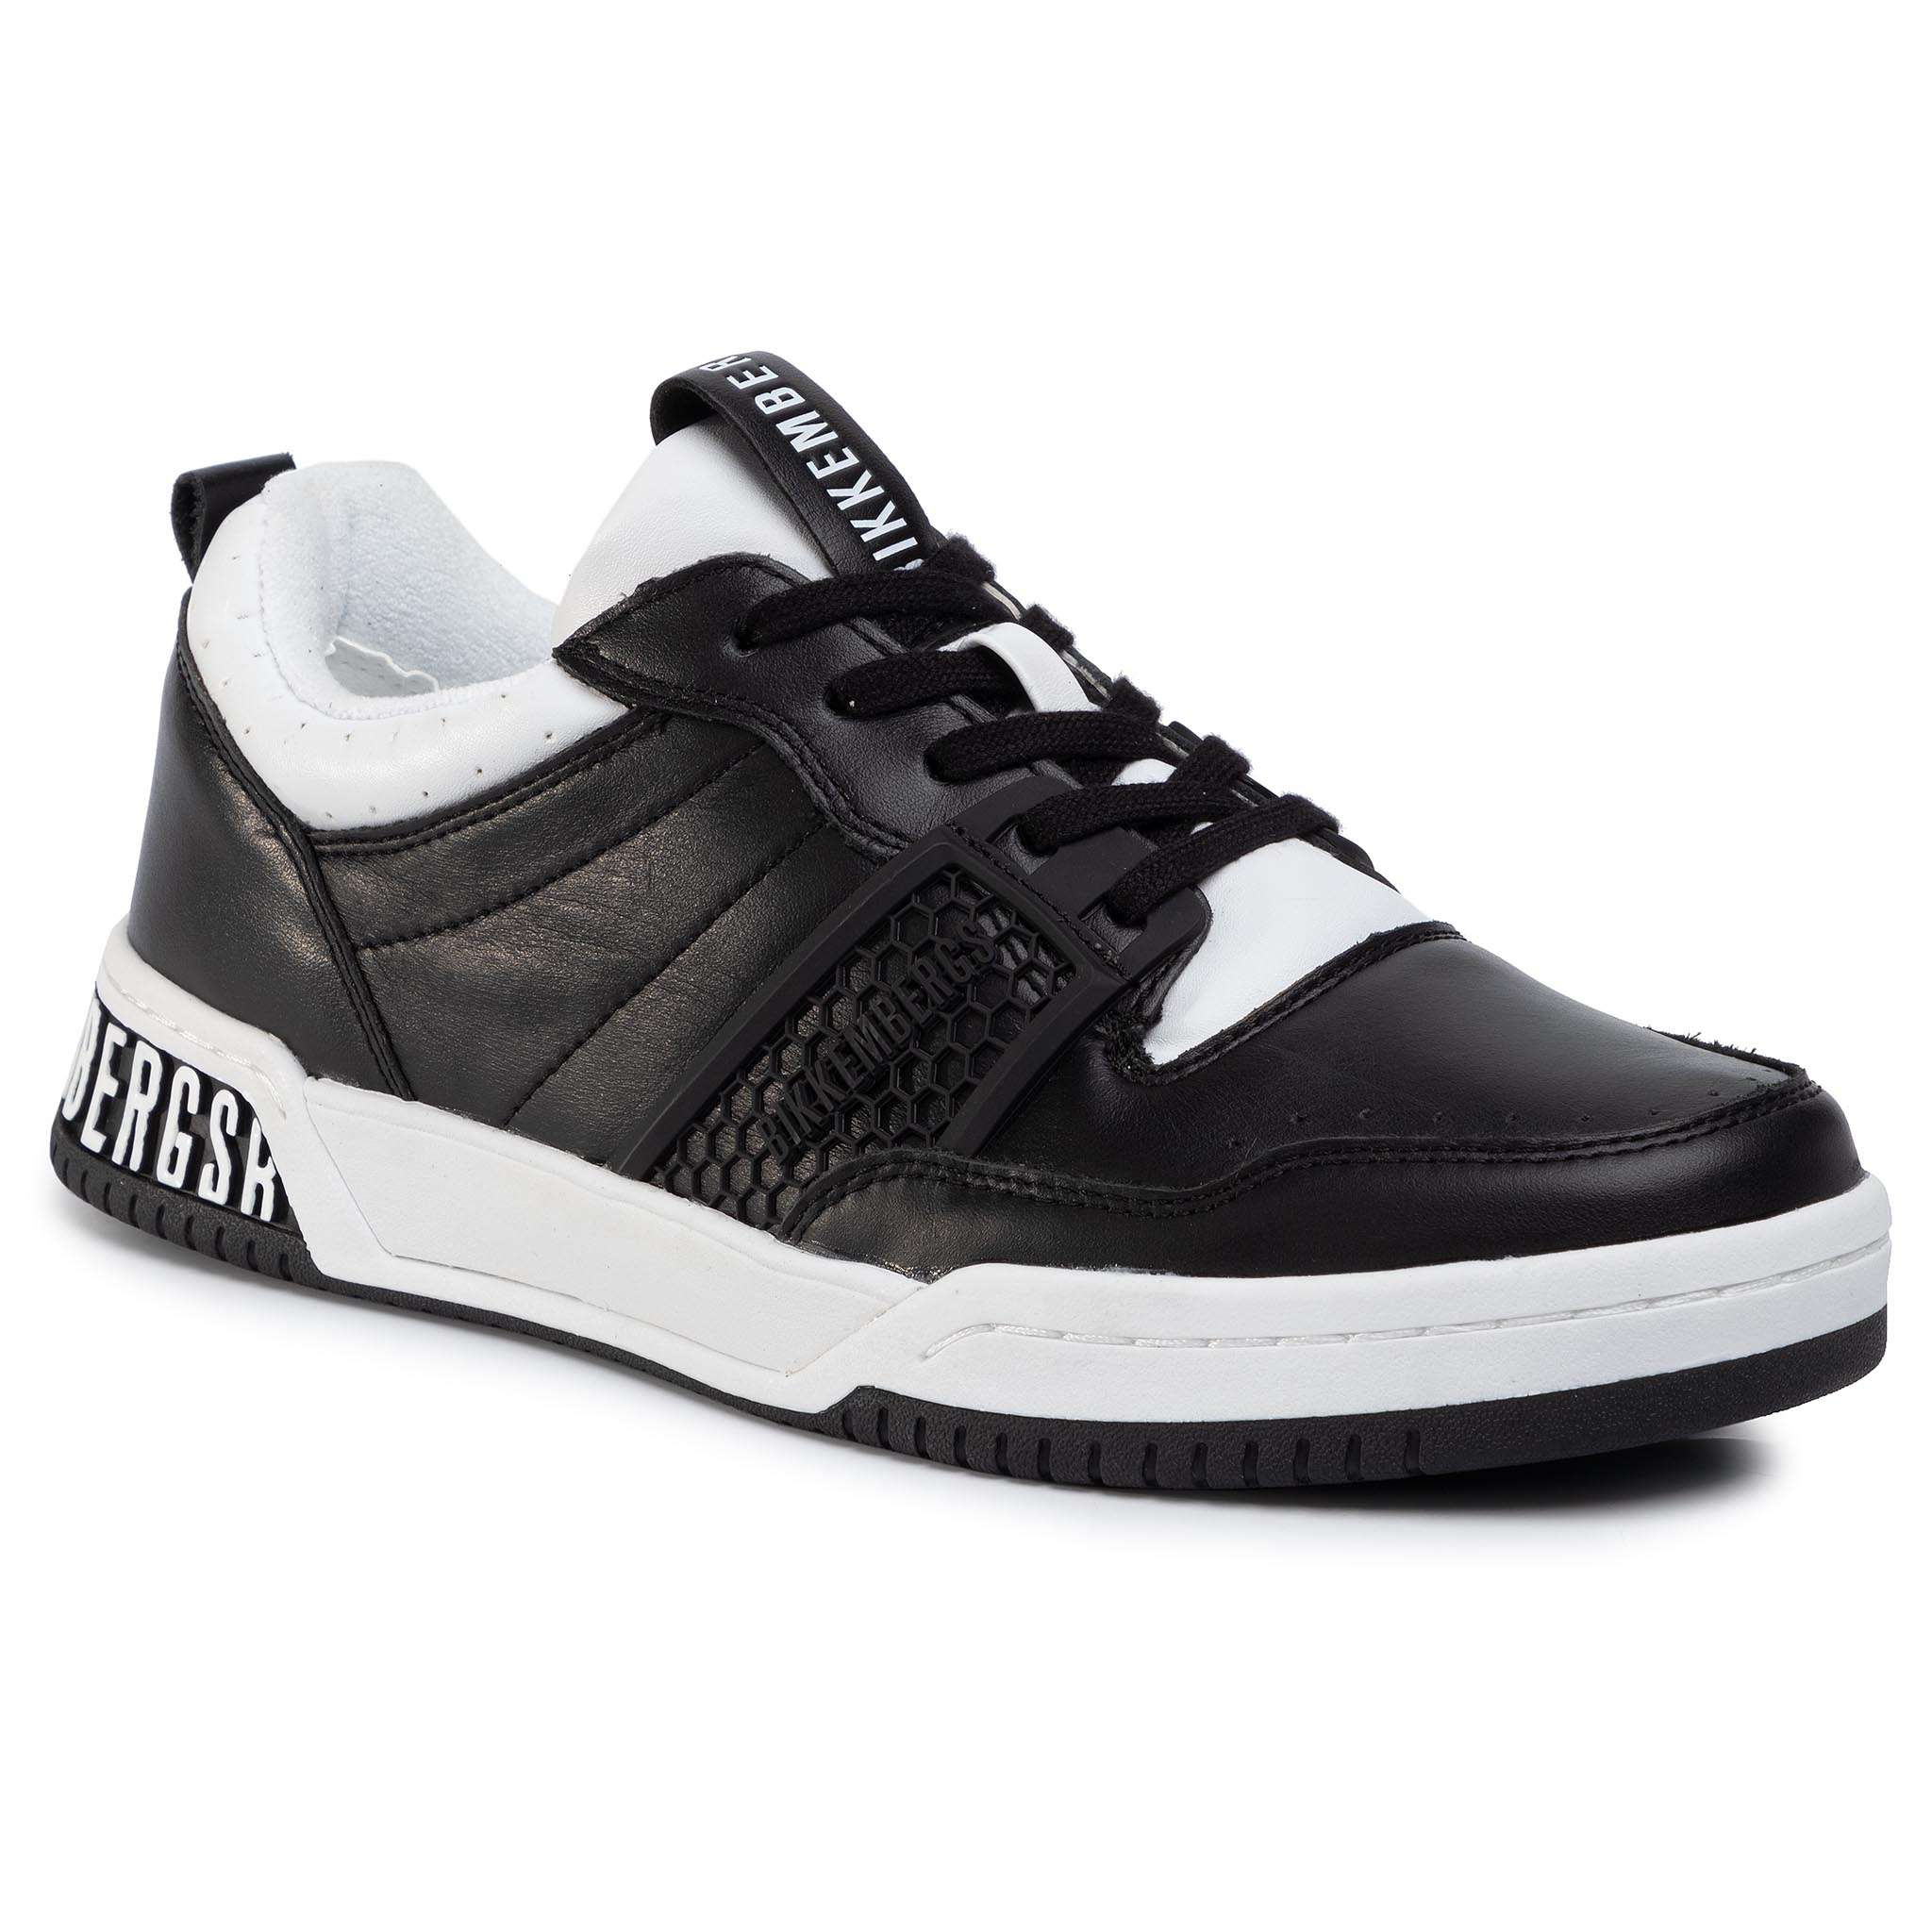 Sneakers BIKKEMBERGS - Low Top Lace Up B4BKM0085 Black/White